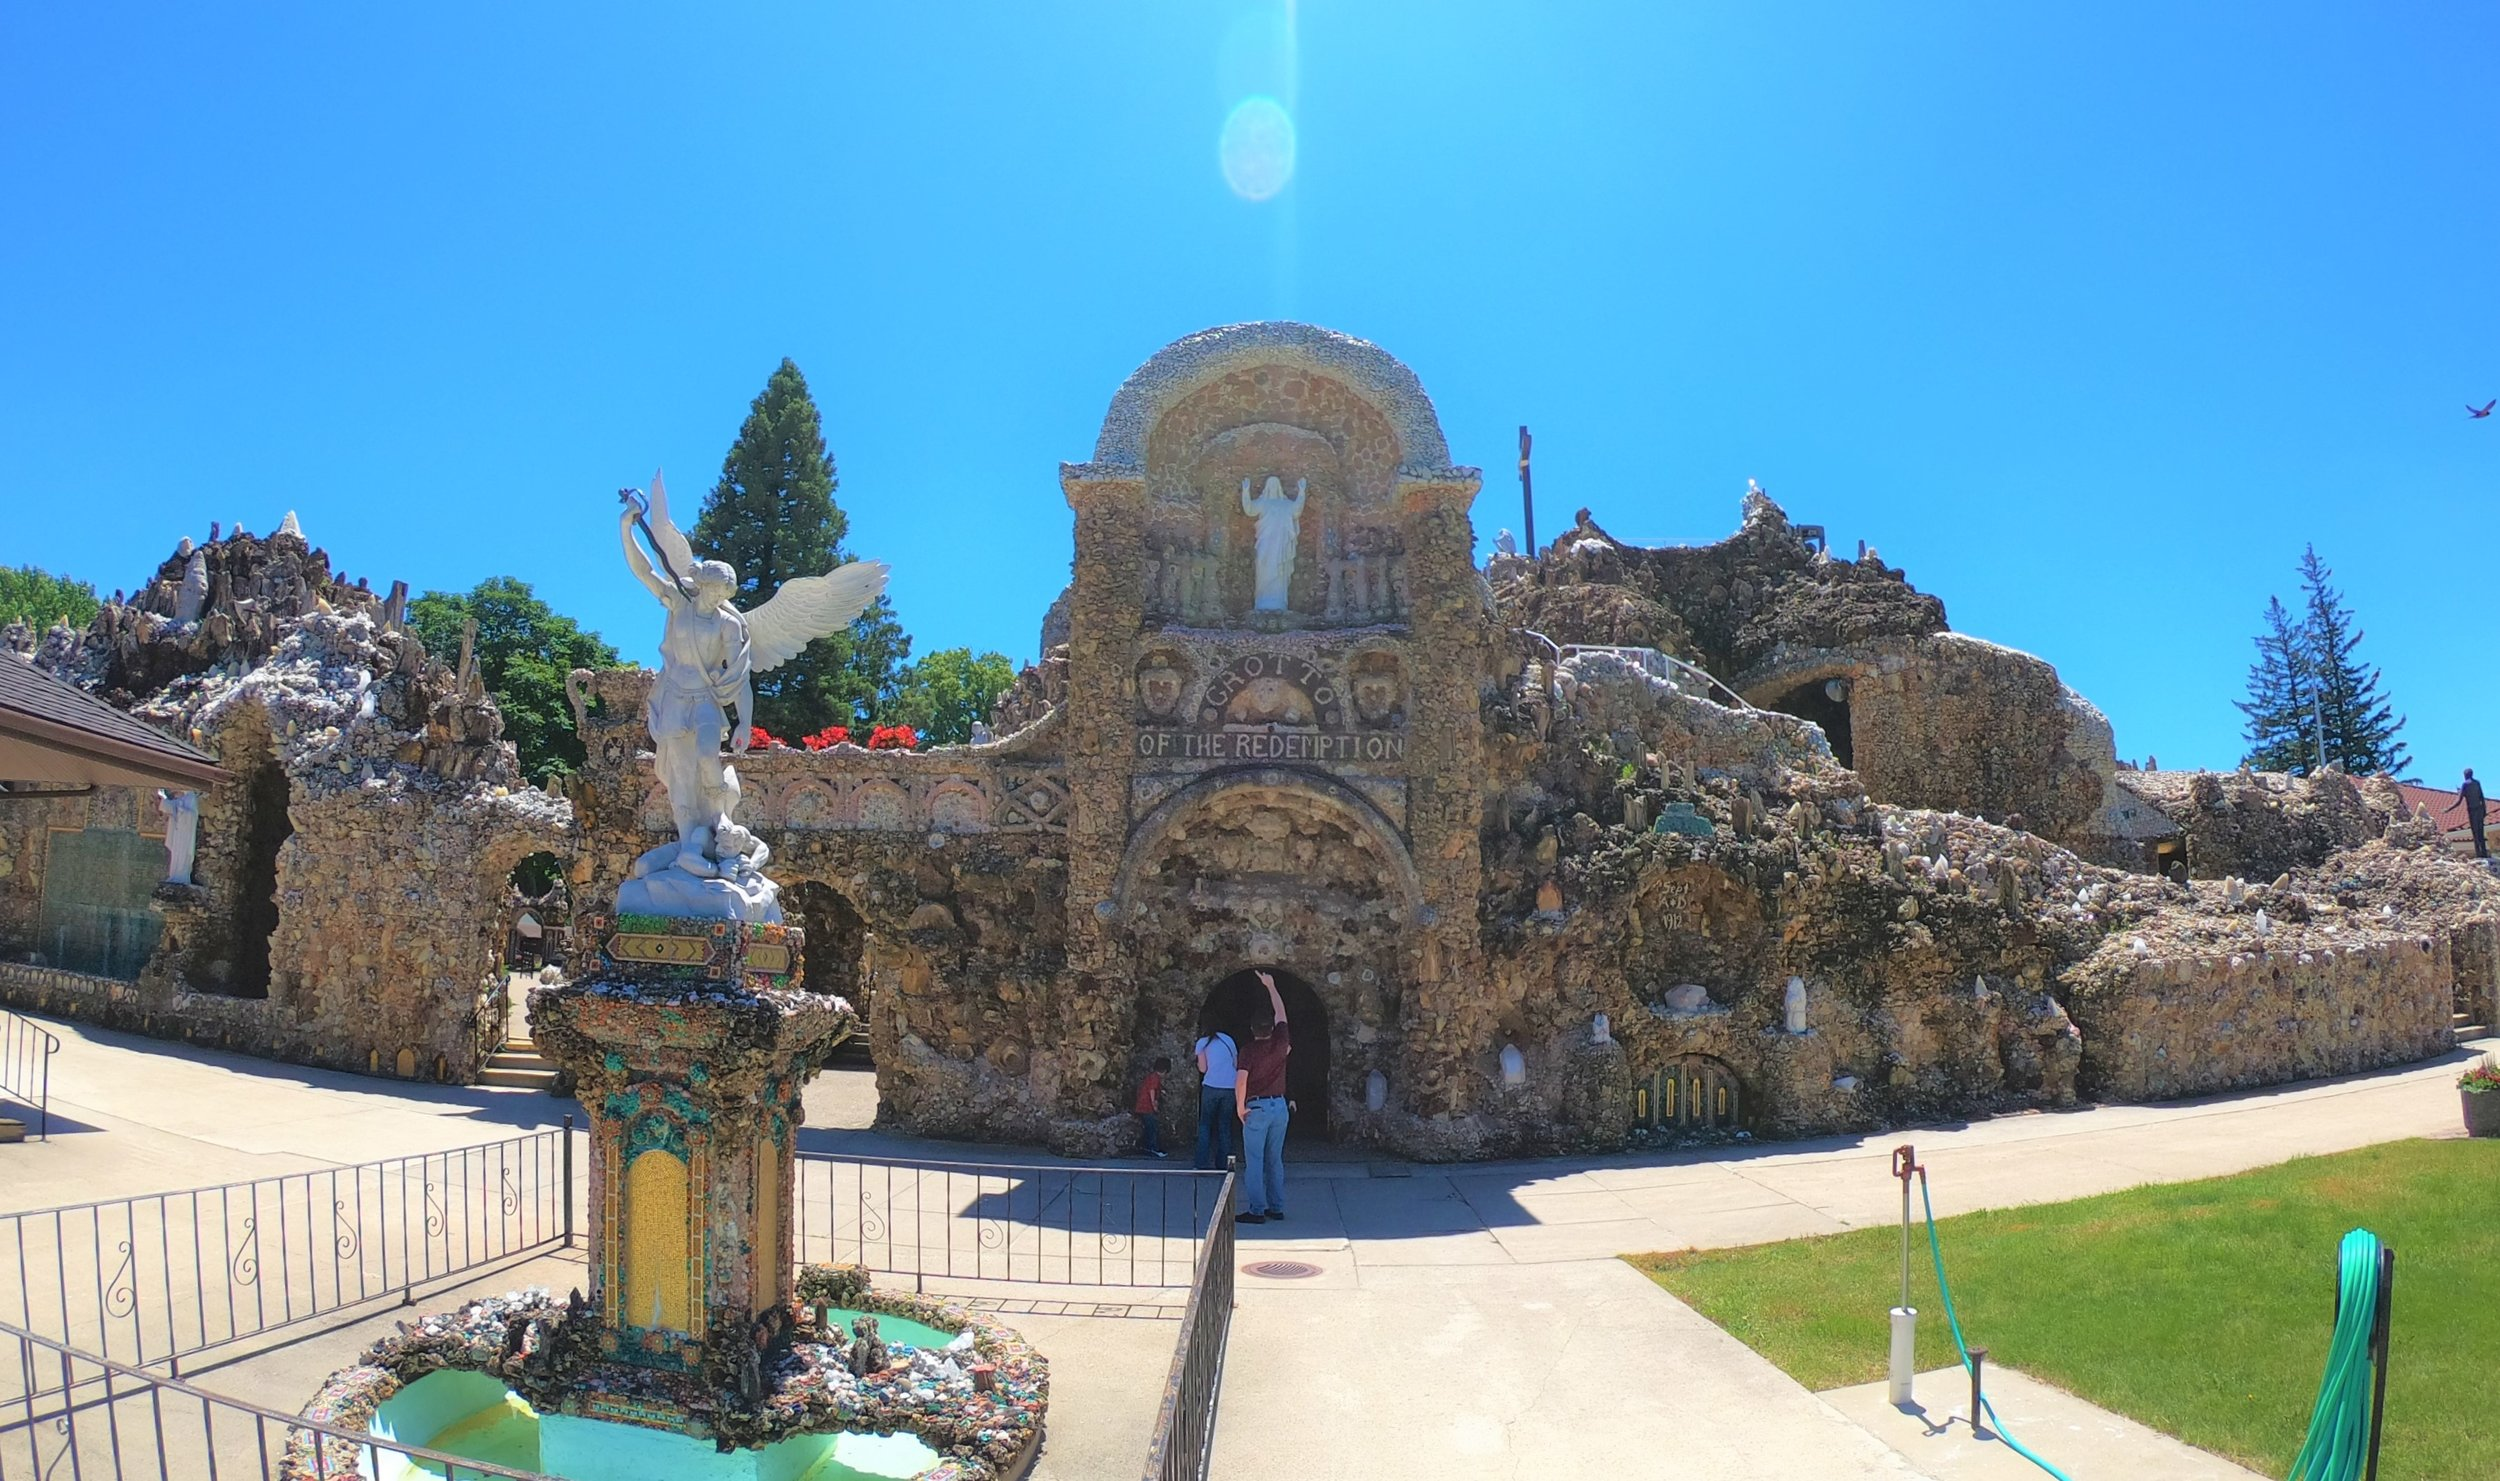 Grotto of the Redemption in West Bend, Iowa